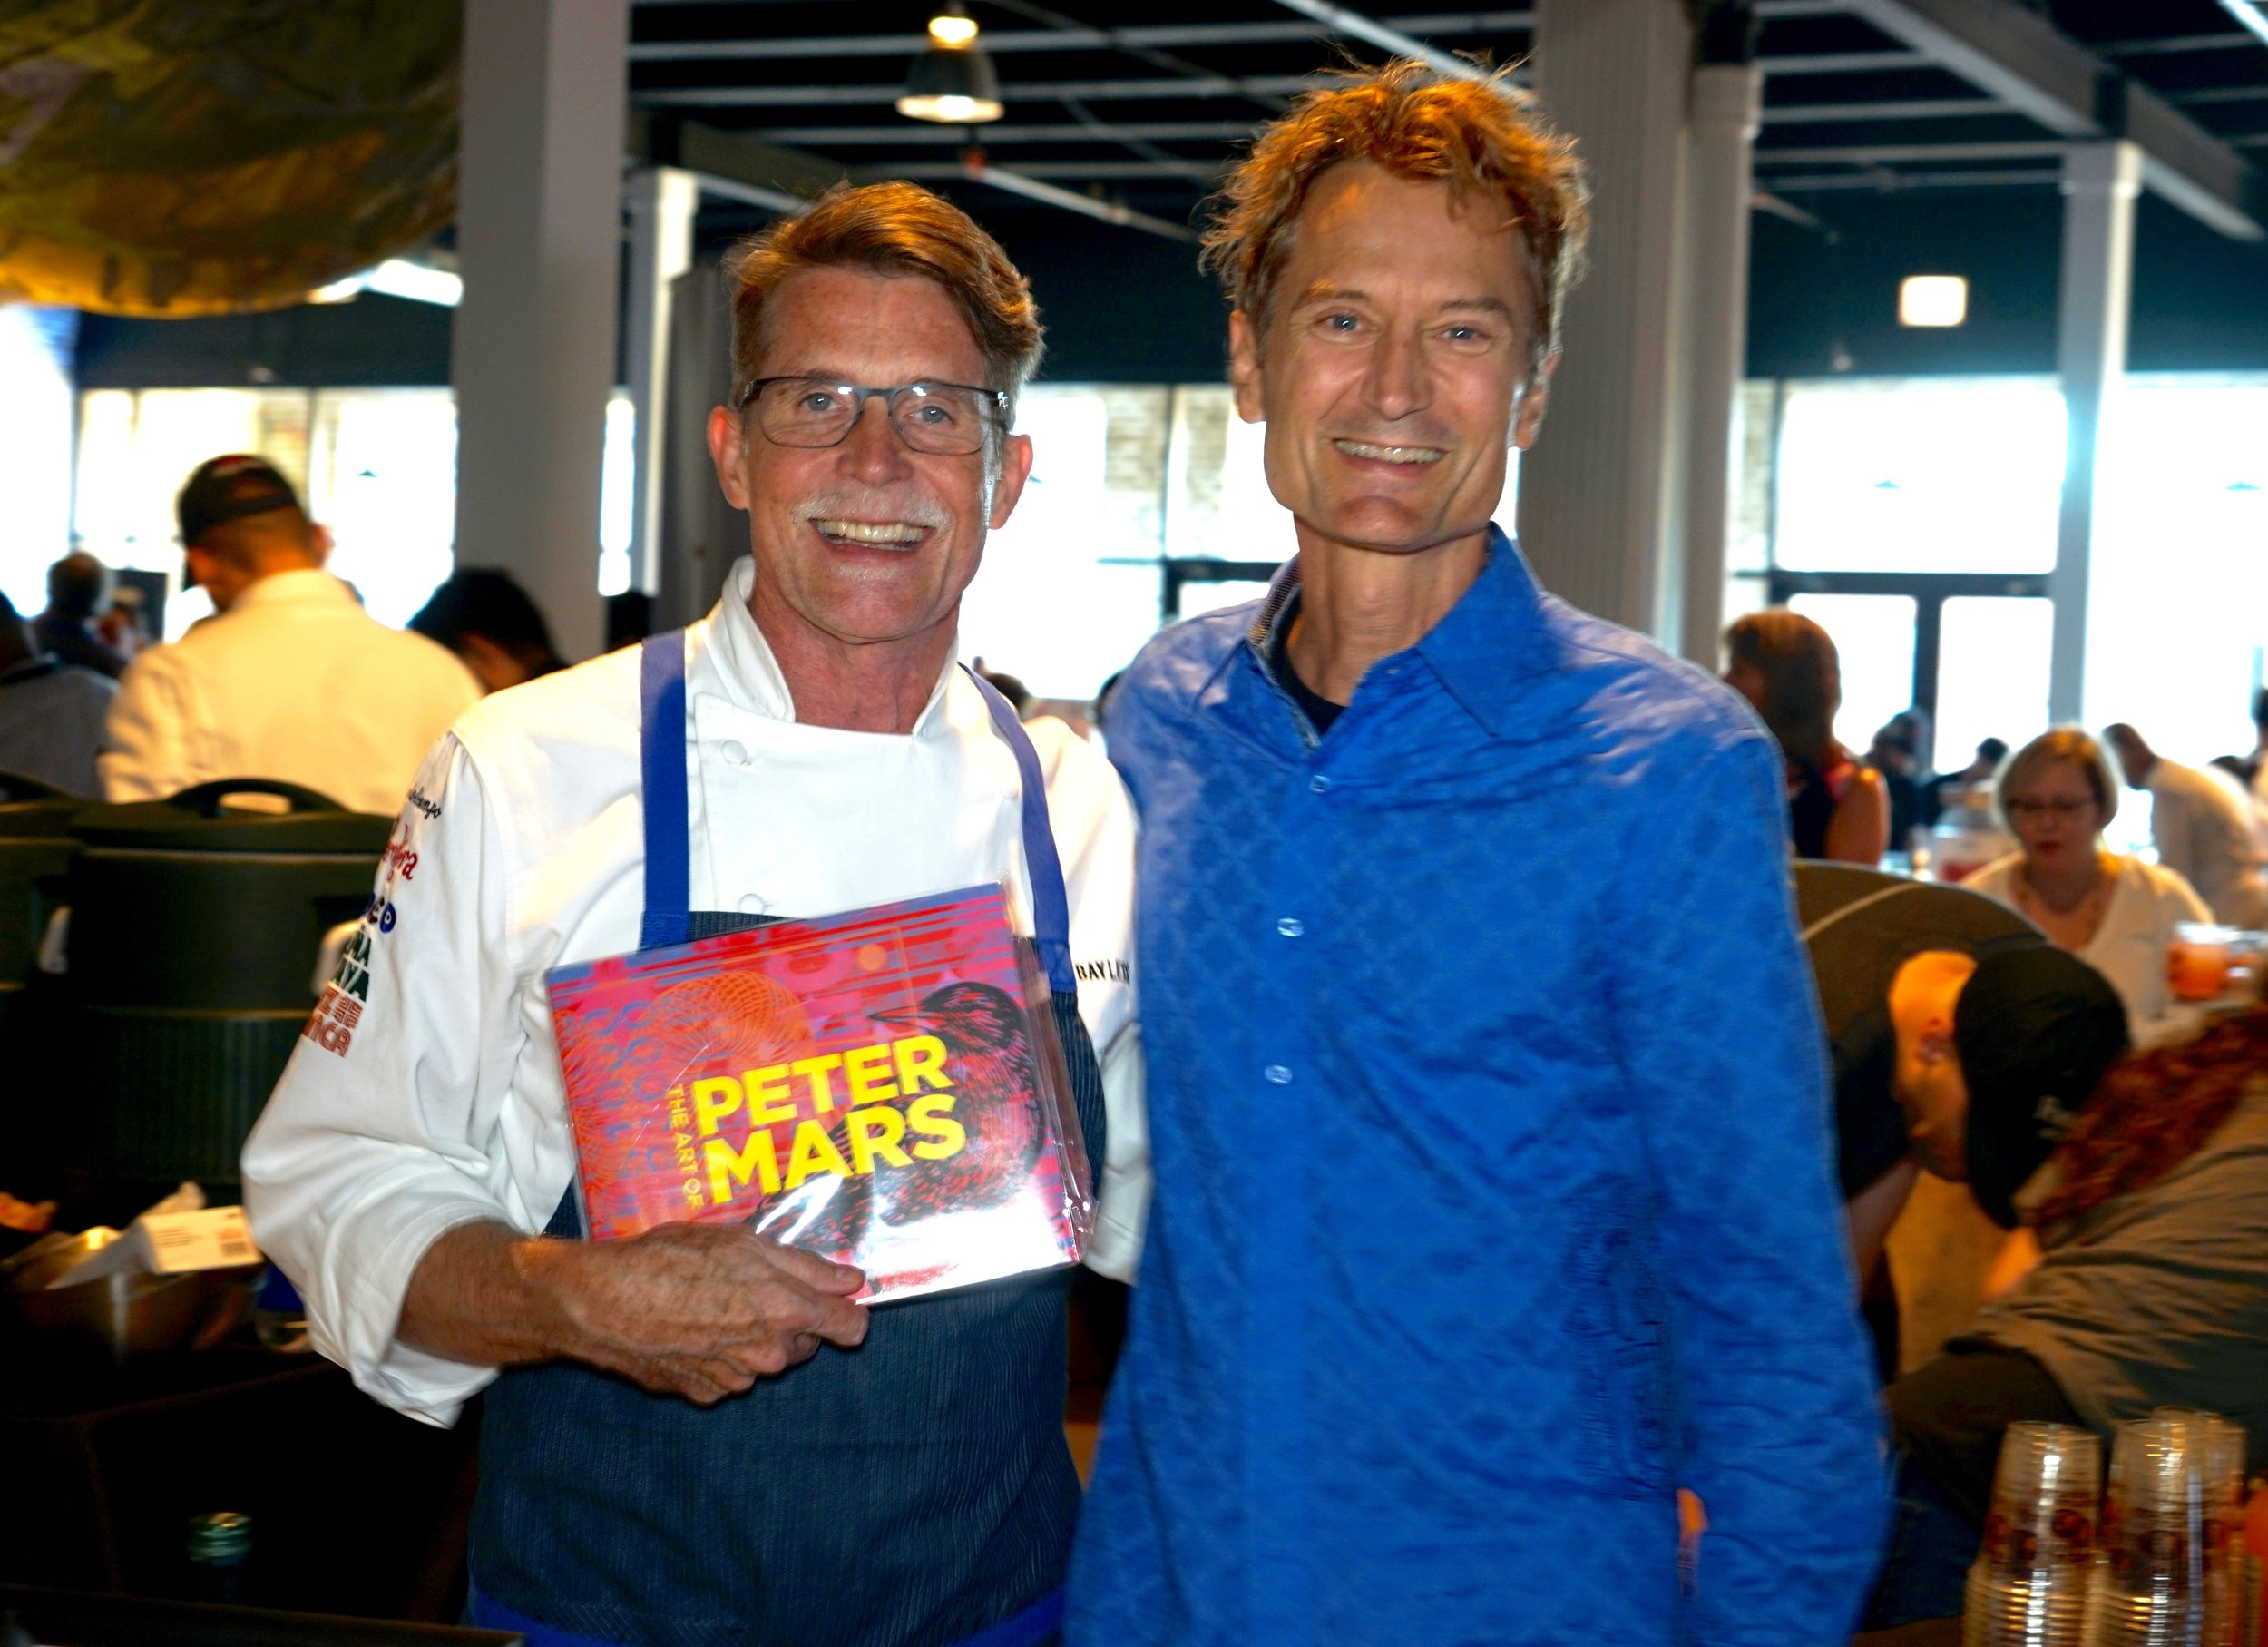 Peter Mars and Rick Bayless